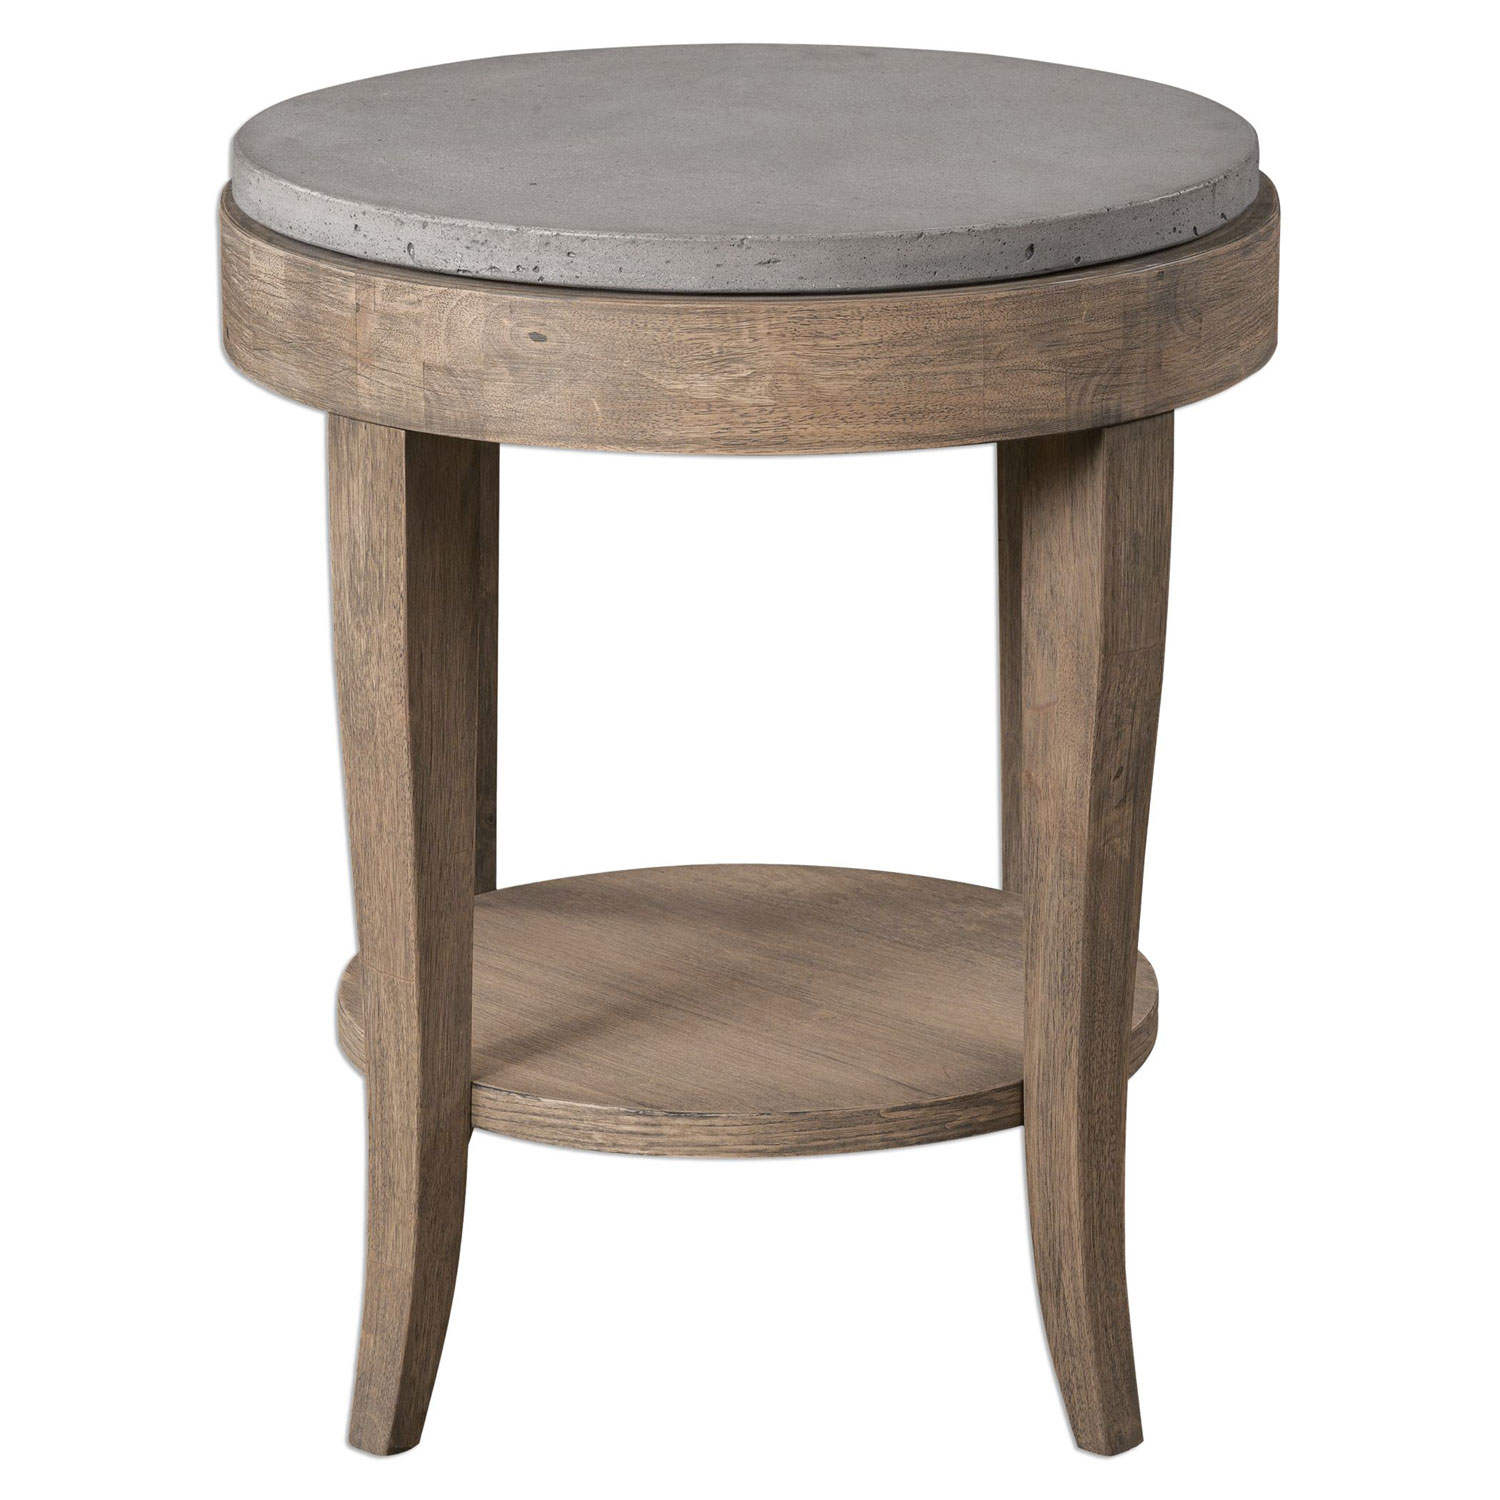 uttermost deka brown round accent table bellacor hover zoom wicker outdoor setting mosaic garden chairs ashley furniture sofa tables nesting set corner nest metal chairside wooden